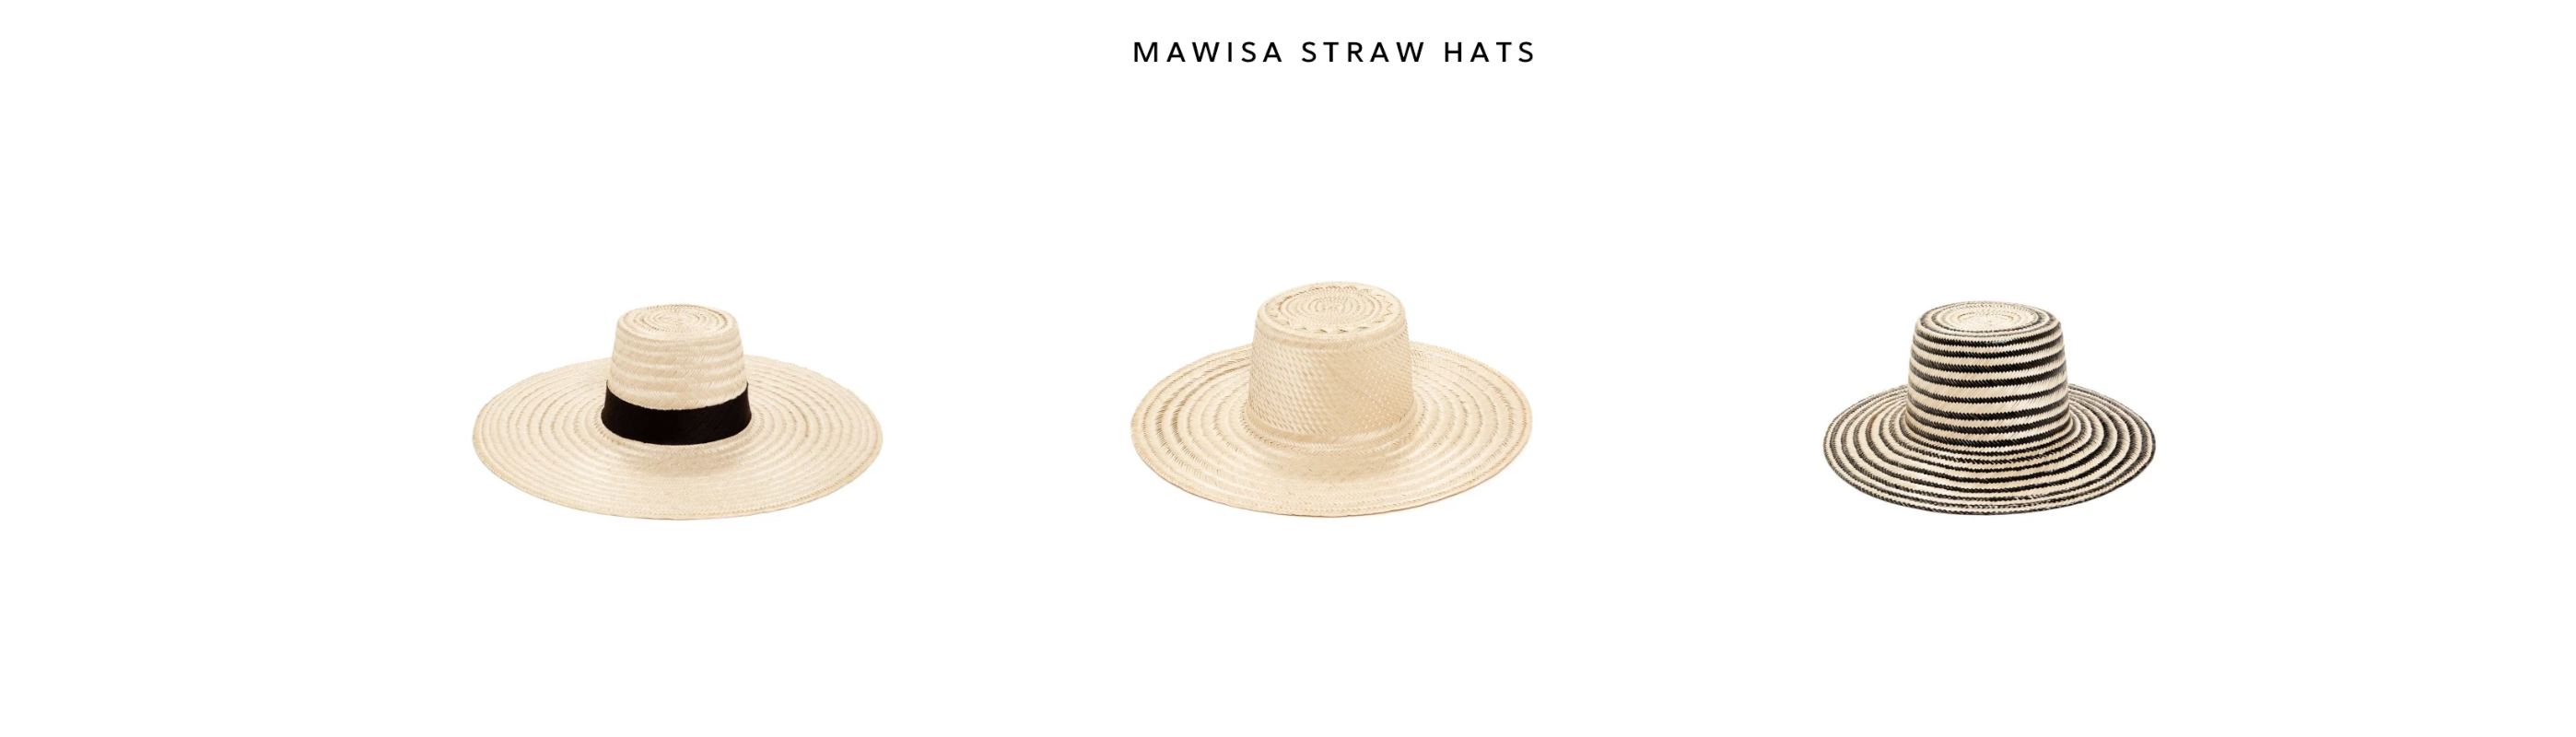 mawisa straw hats by janessa leone most protective straw from sun uv rays